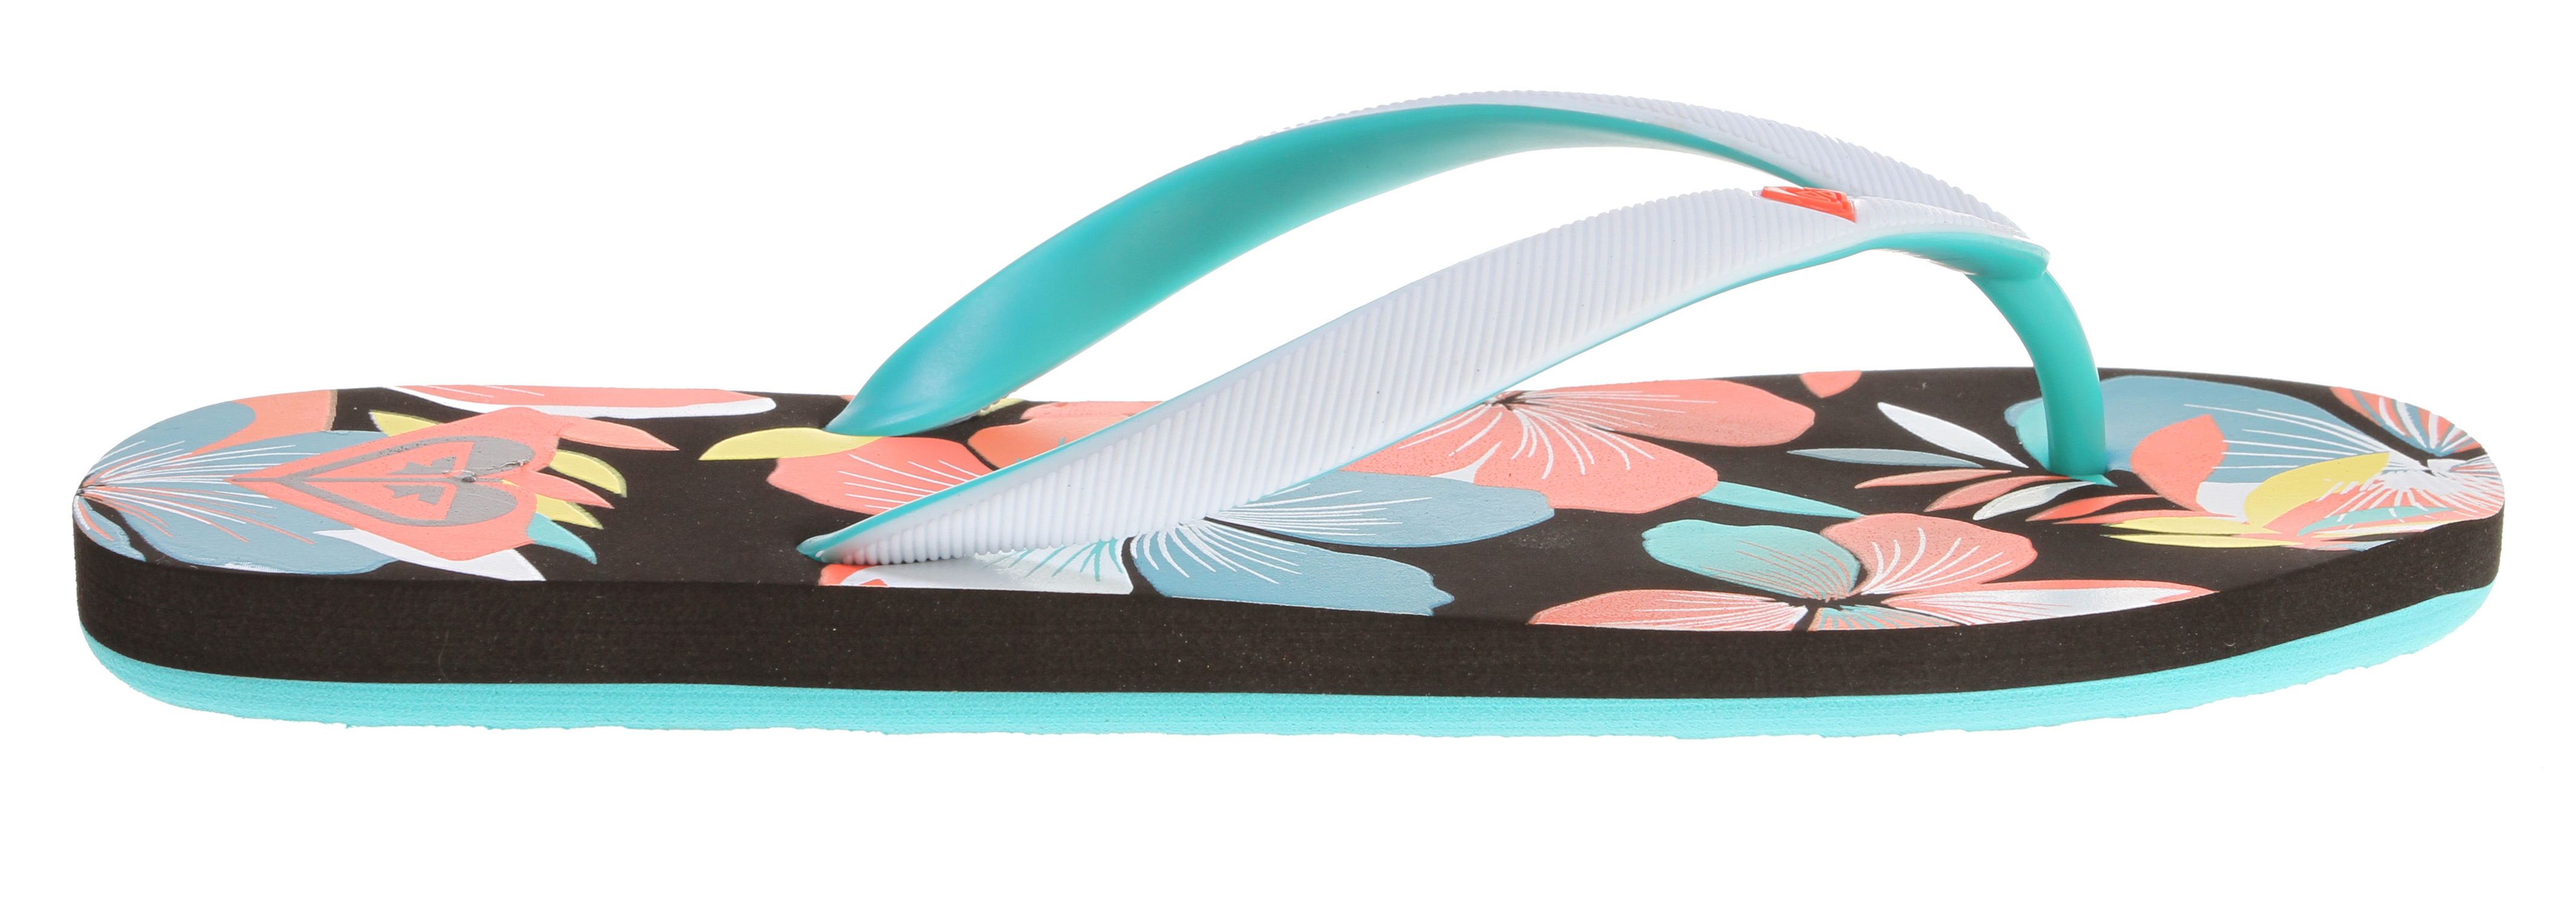 Surf Key Features of the Roxy Tahiti III Sandals: Soft EVA and two tone upper with molded heart logo Dual density EVA insole with graphic EVA outsole - $9.95